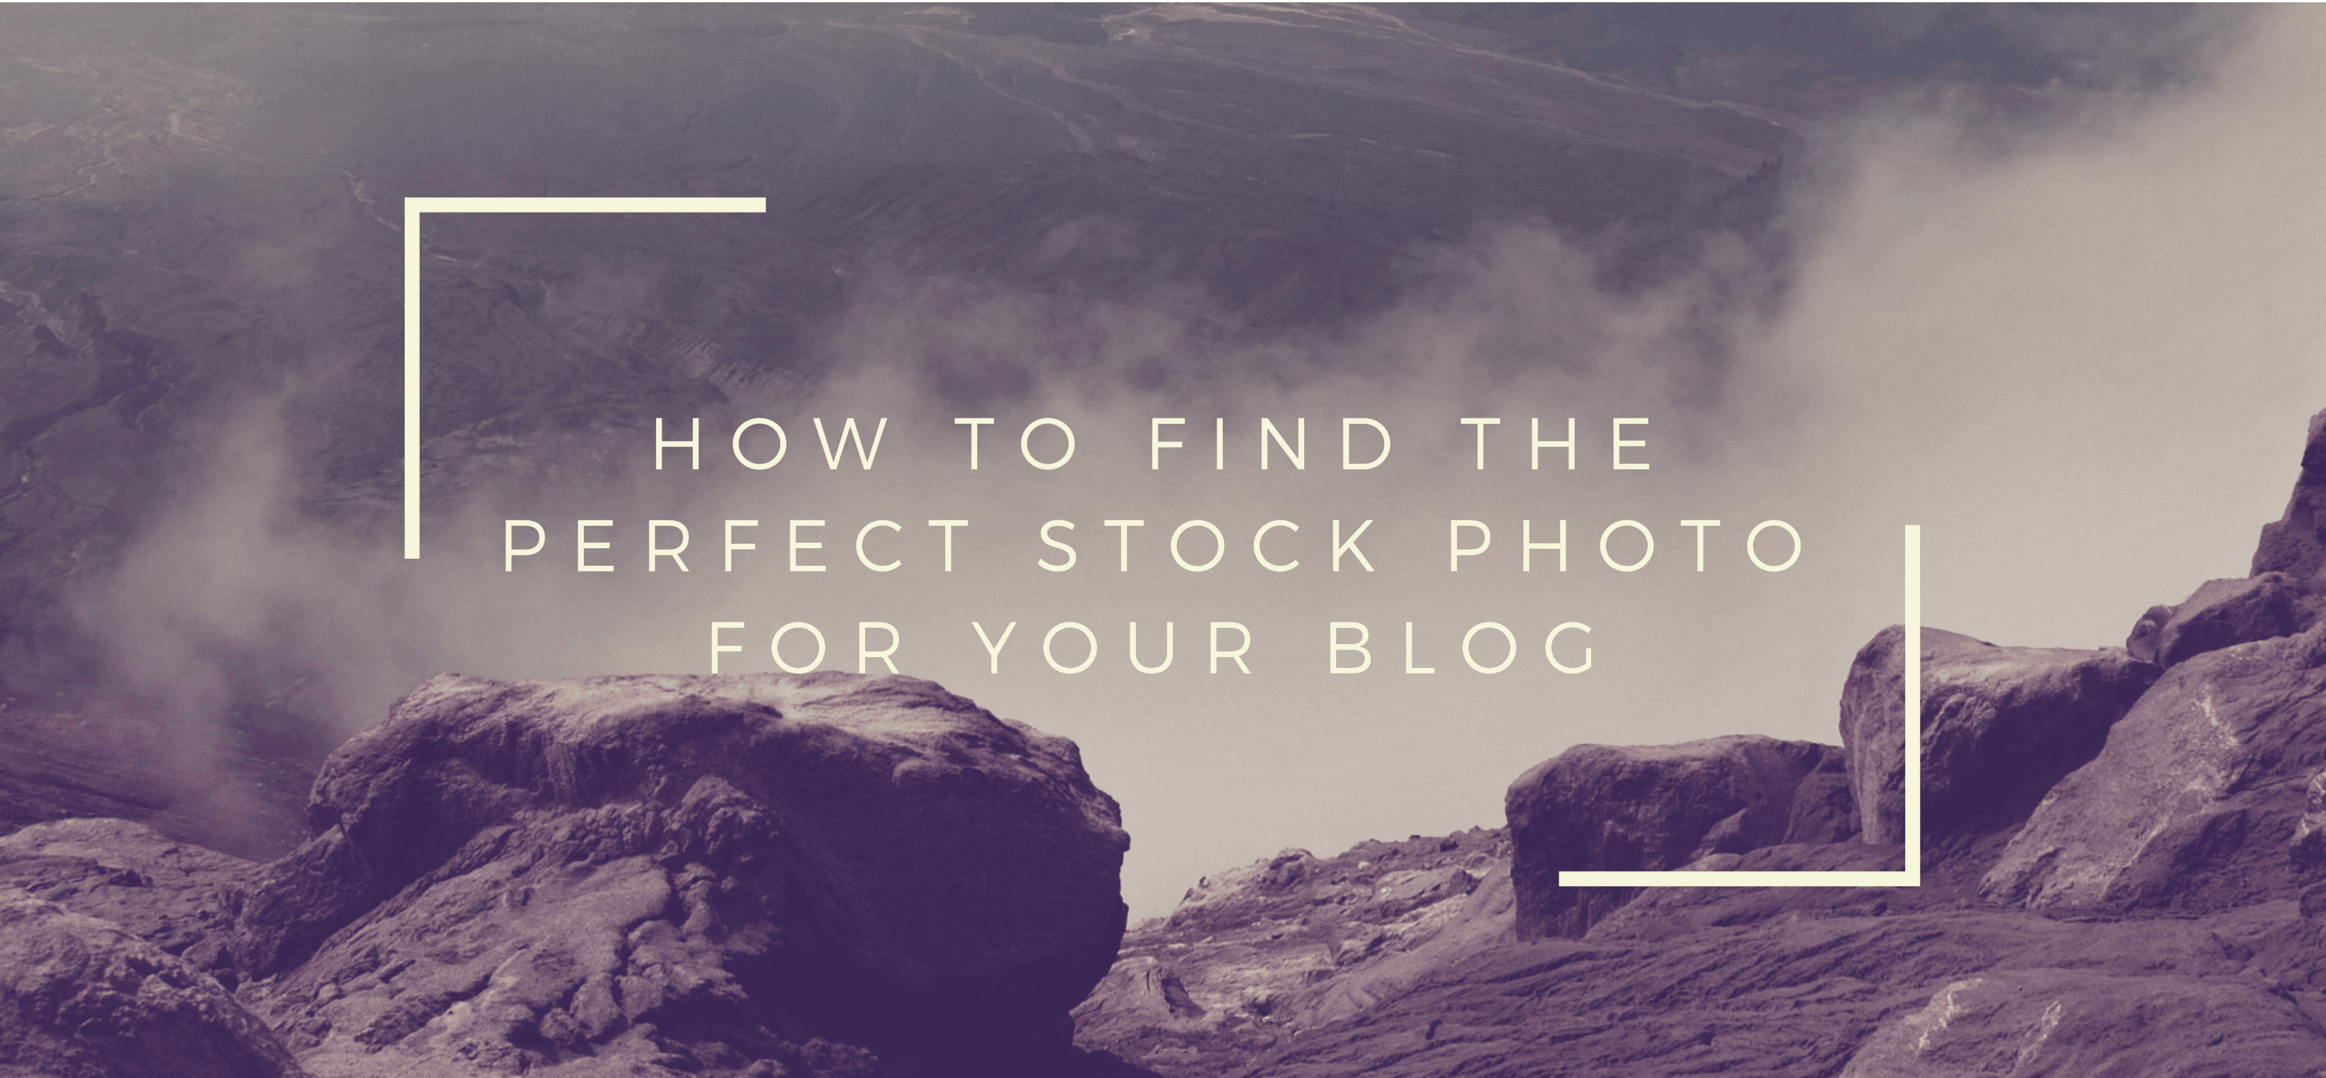 How to find the perfect stock photos for your blog